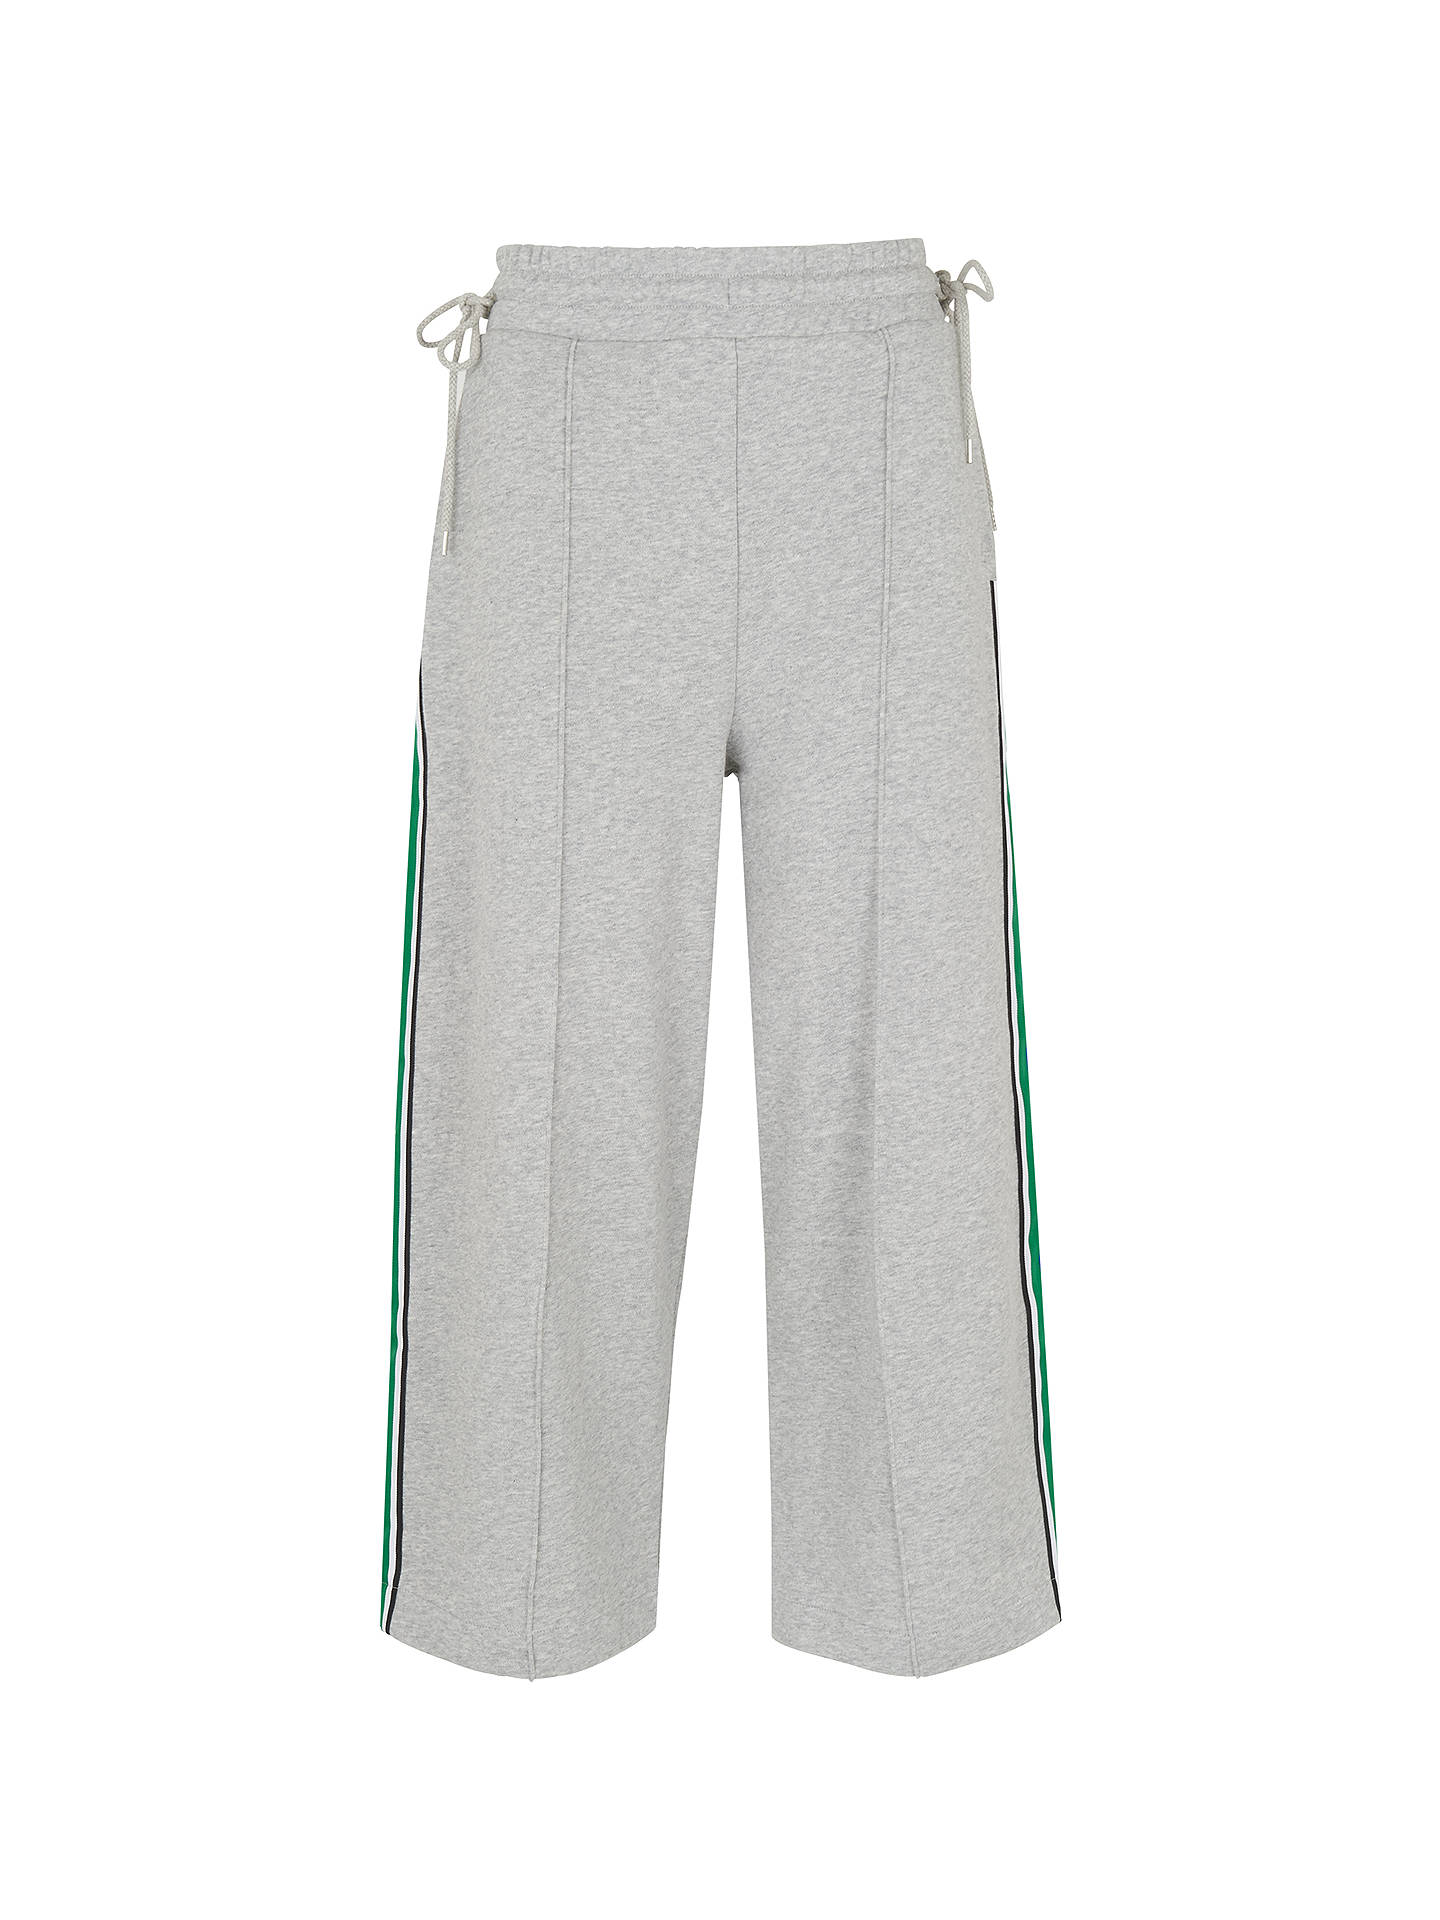 BuyWhistles Tie Side Stripe Sweat Pants, Grey Marl, XS Online at johnlewis.com